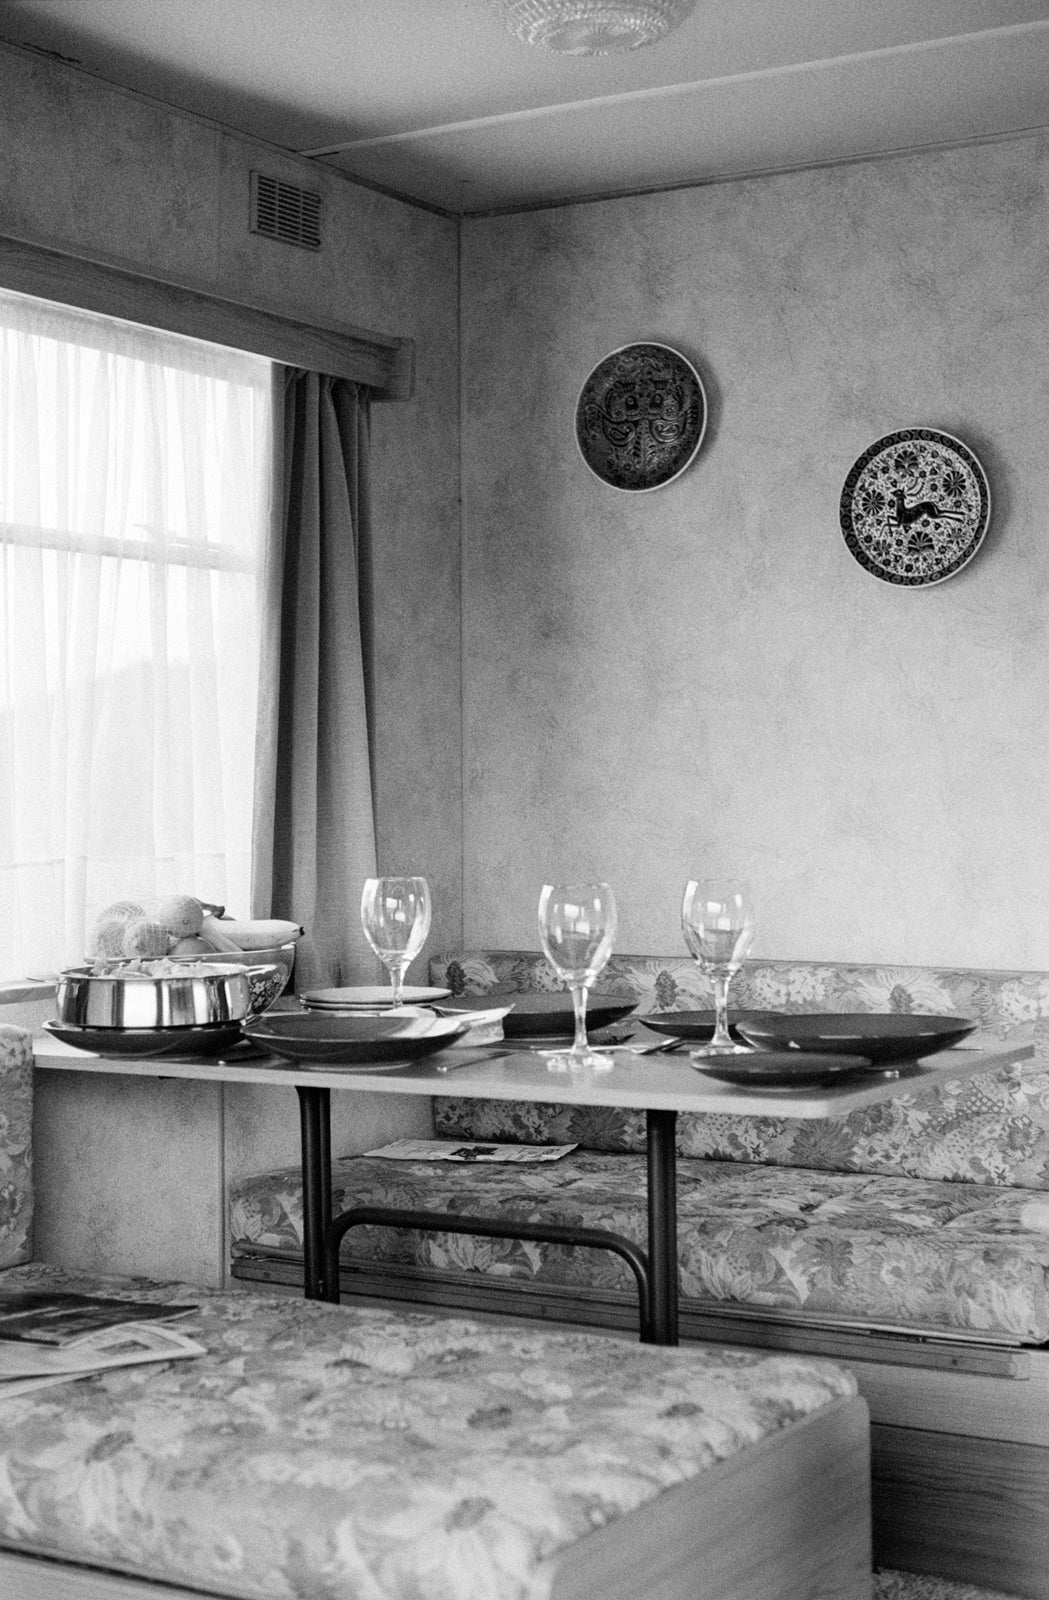 A Dinner for Three, Giulia Berto (Framed)